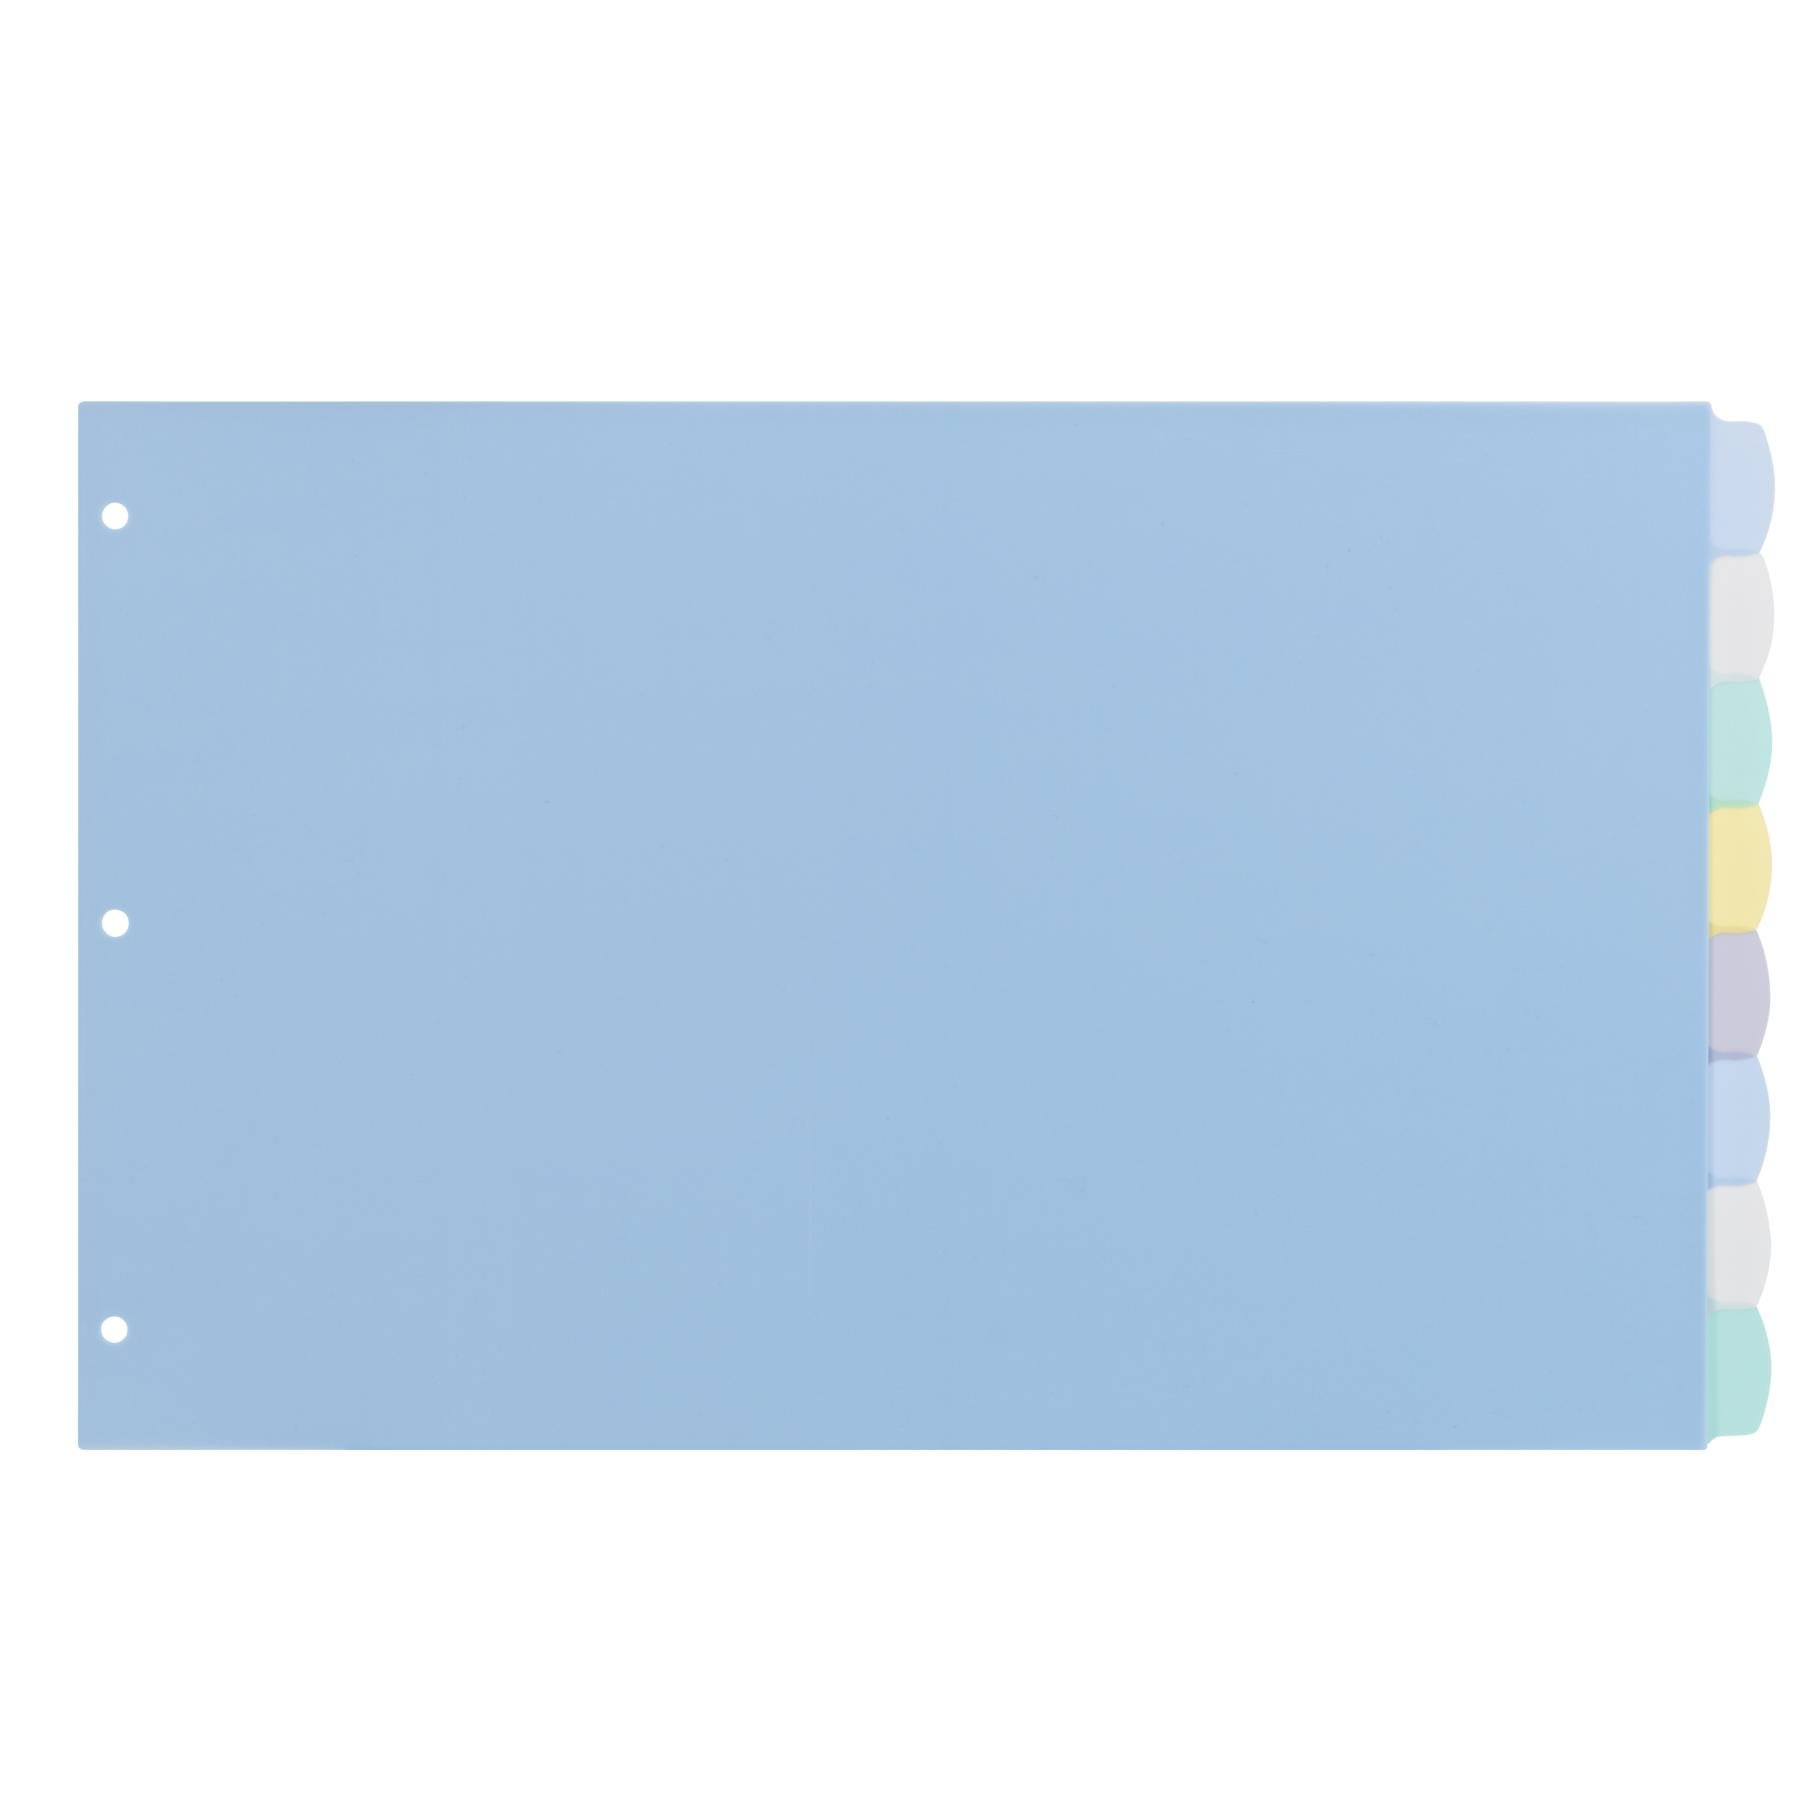 Avery Translucent Durable Write-On Dividers, 11 x 17 inches, 8 Tab, Multi-Color Tab, Not Printer Compatible (16132)